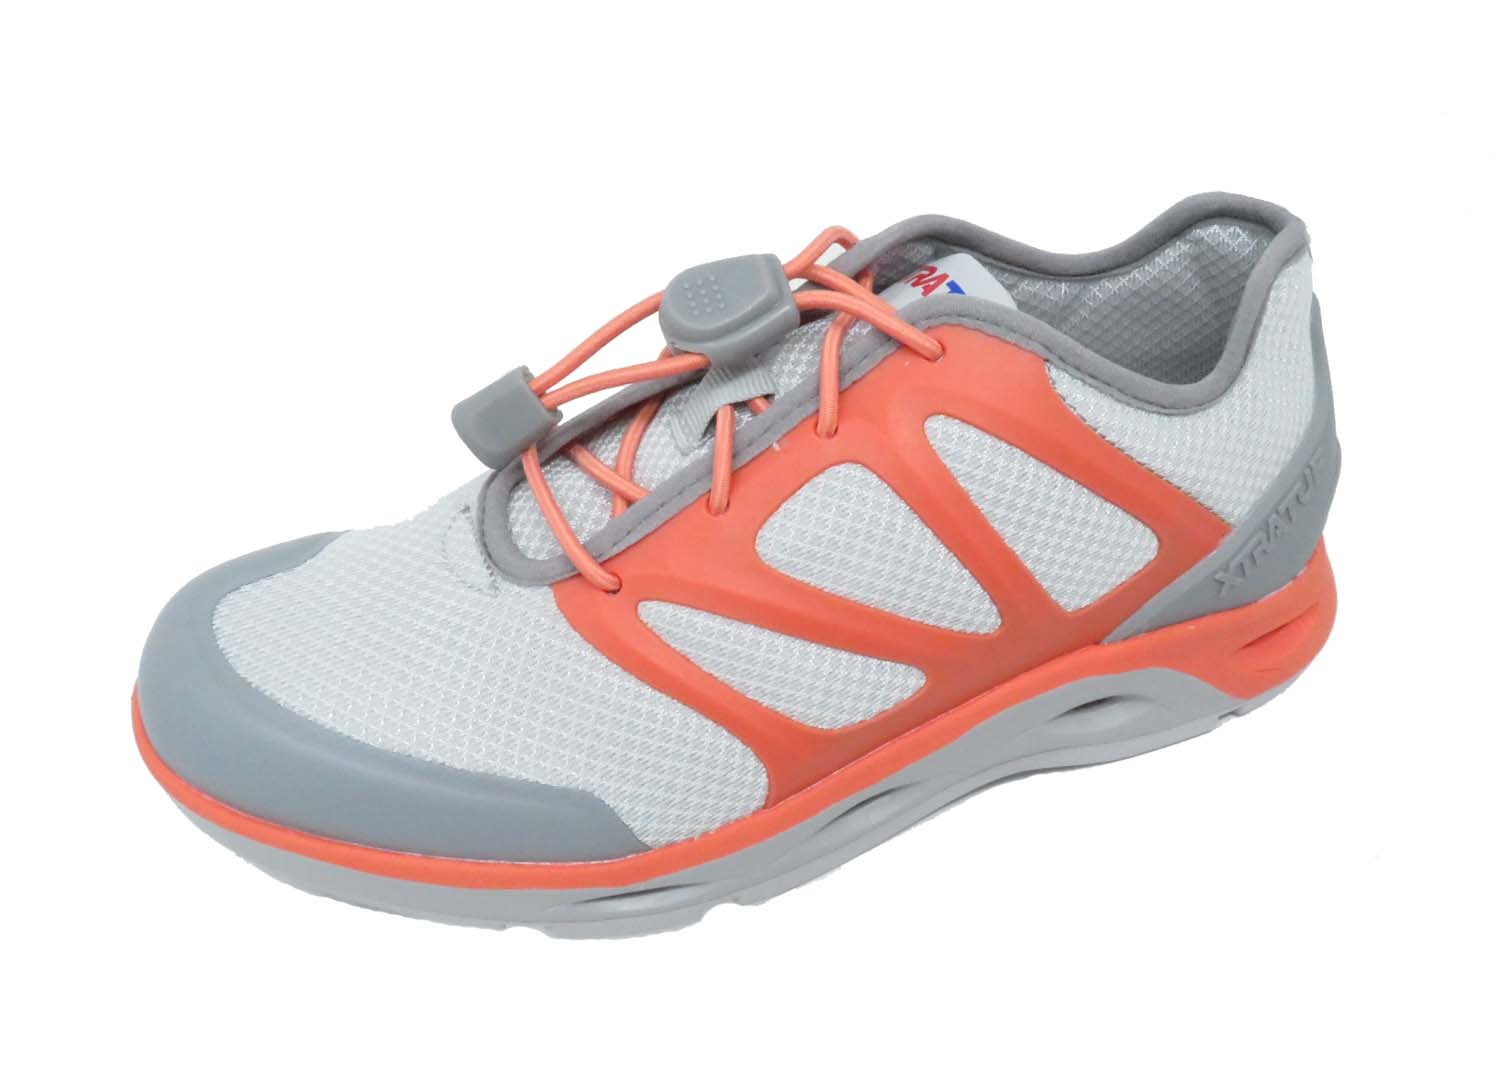 Xtratuf Women's Spindrift Coral Size 6 Water Shoe